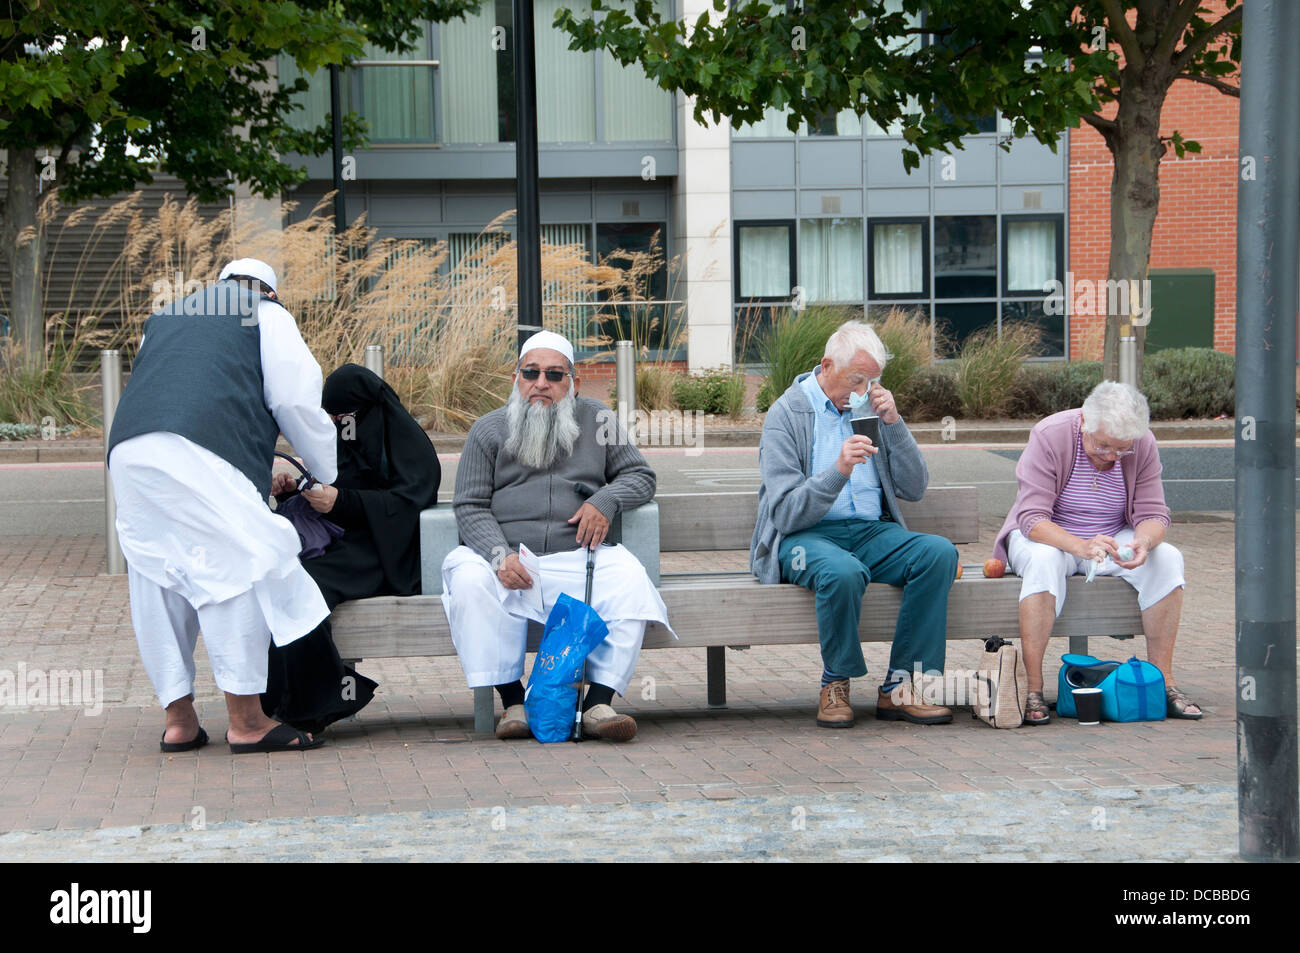 Royal Docks, East London. Elderly couples , Muslim and white English, sitting on a bench - Stock Image